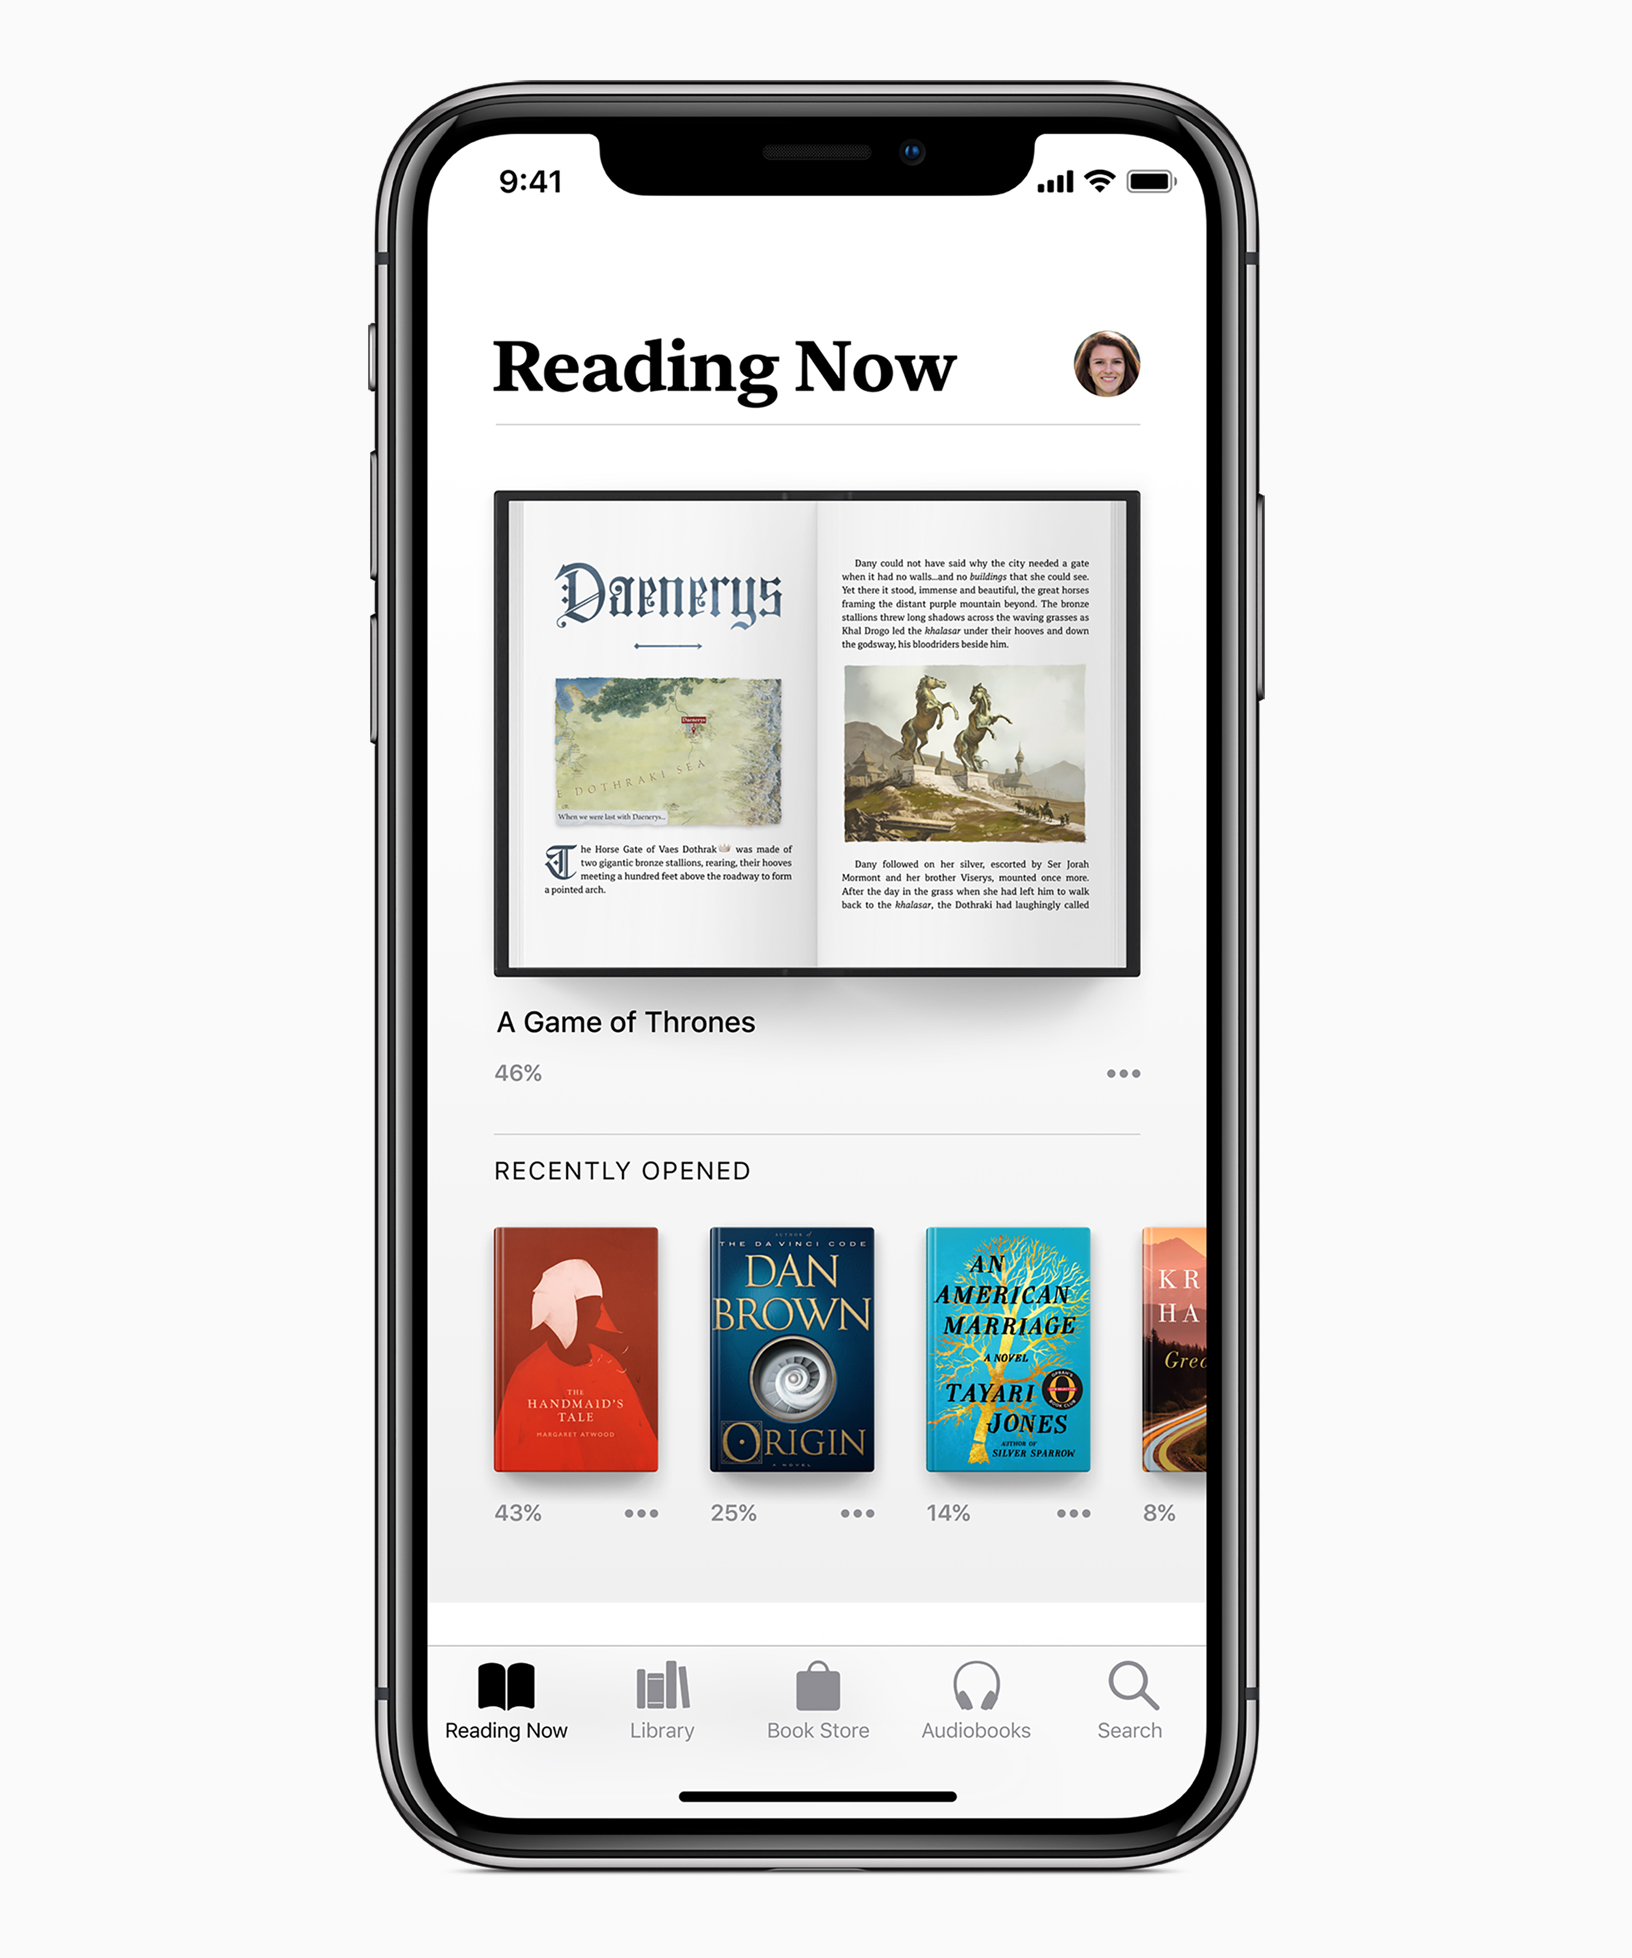 Apple previews the Apple Books app replacing iBooks on iOS this fall